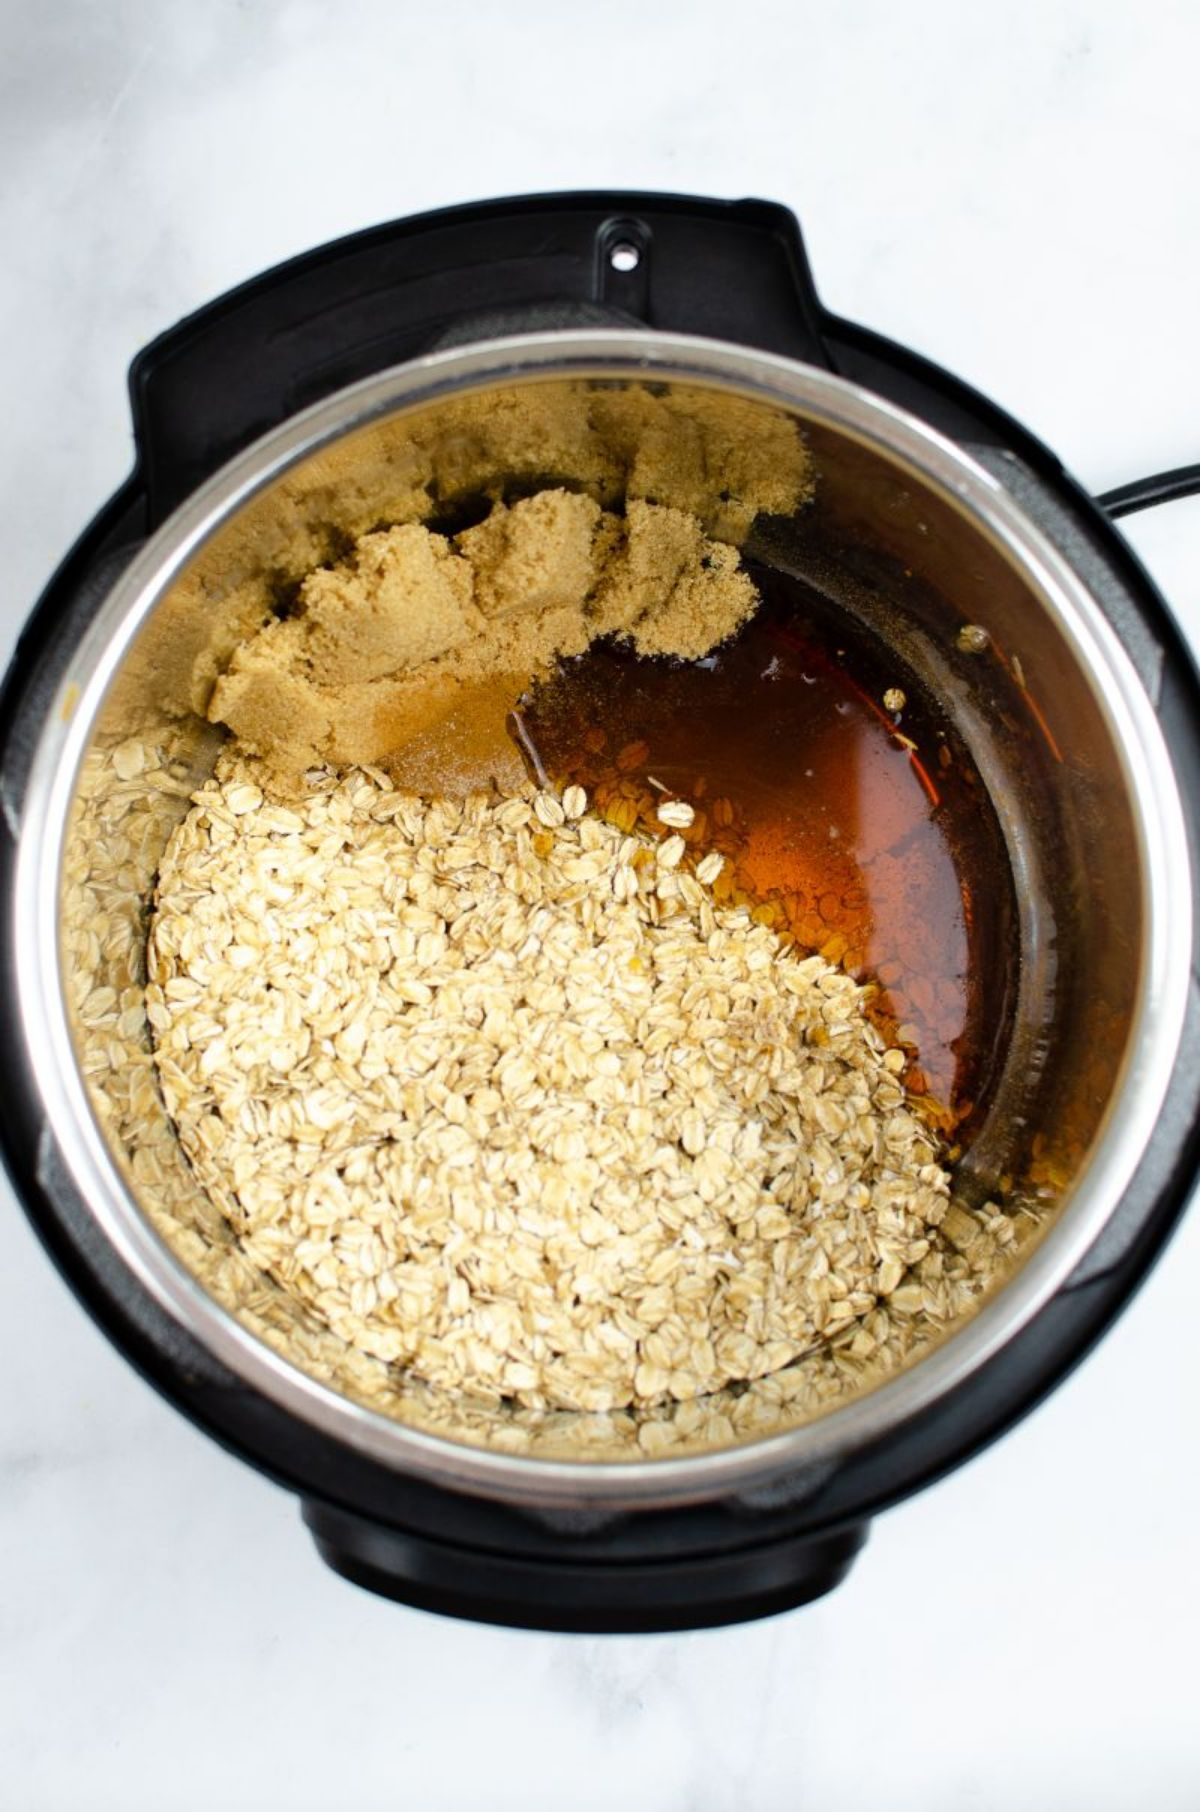 Ingredients for Instant Pot Oatmeal in an Instant Pot.